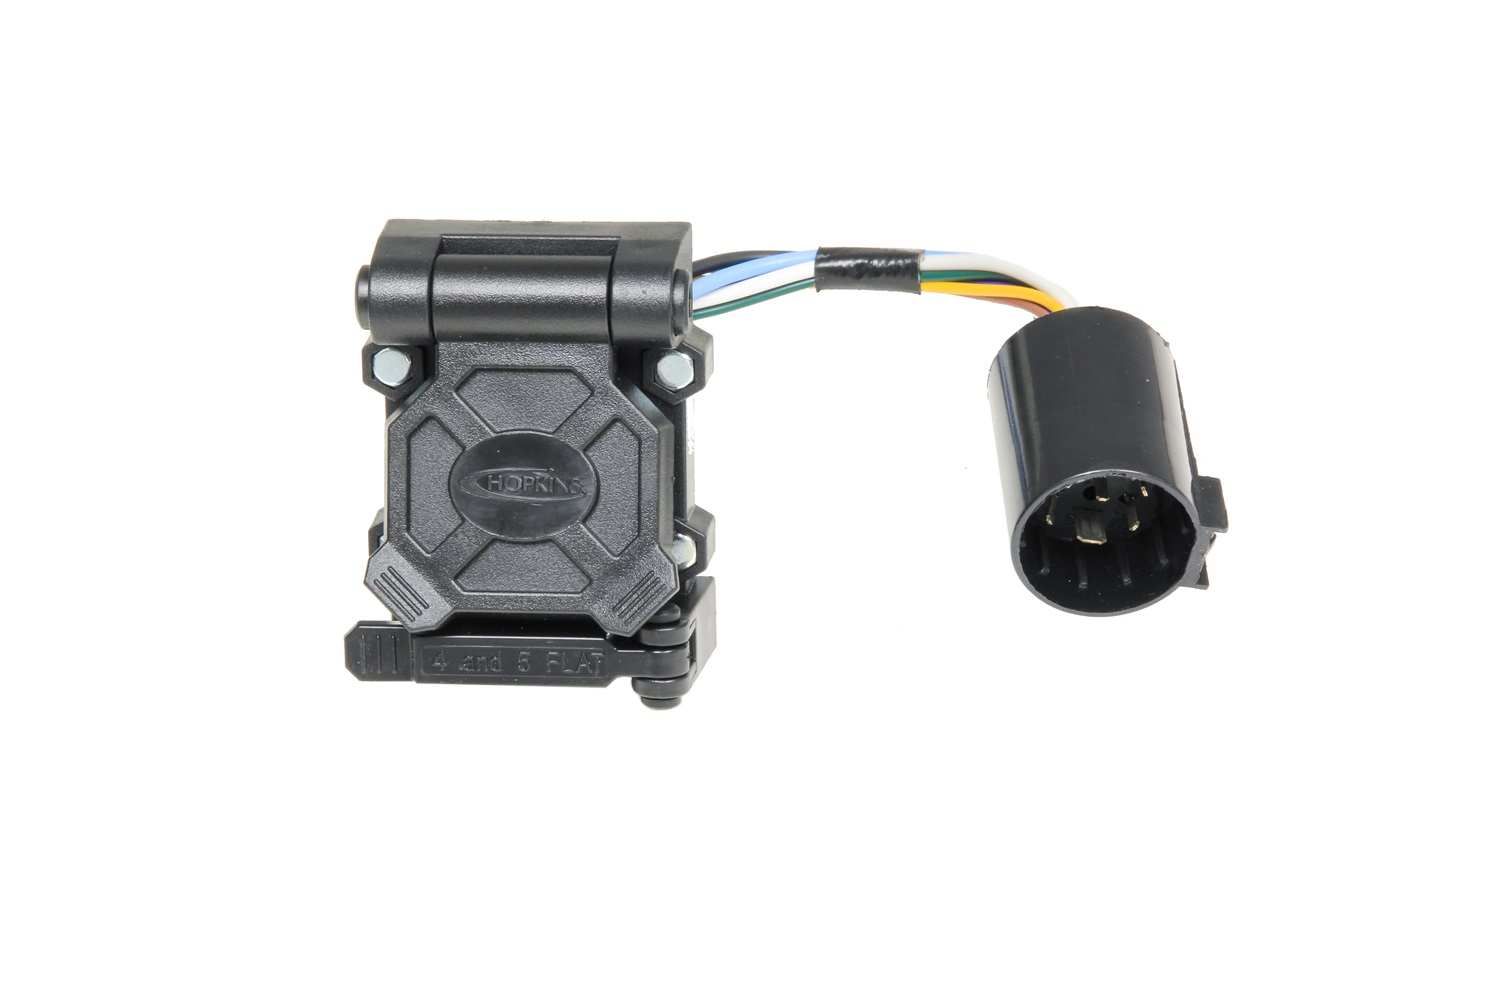 hight resolution of hopkins towing solution 40999 plug in simple endurance multi tow vehicle to trailer wiring harness 7 blade 5 and 4 flat connector with harness qty 25